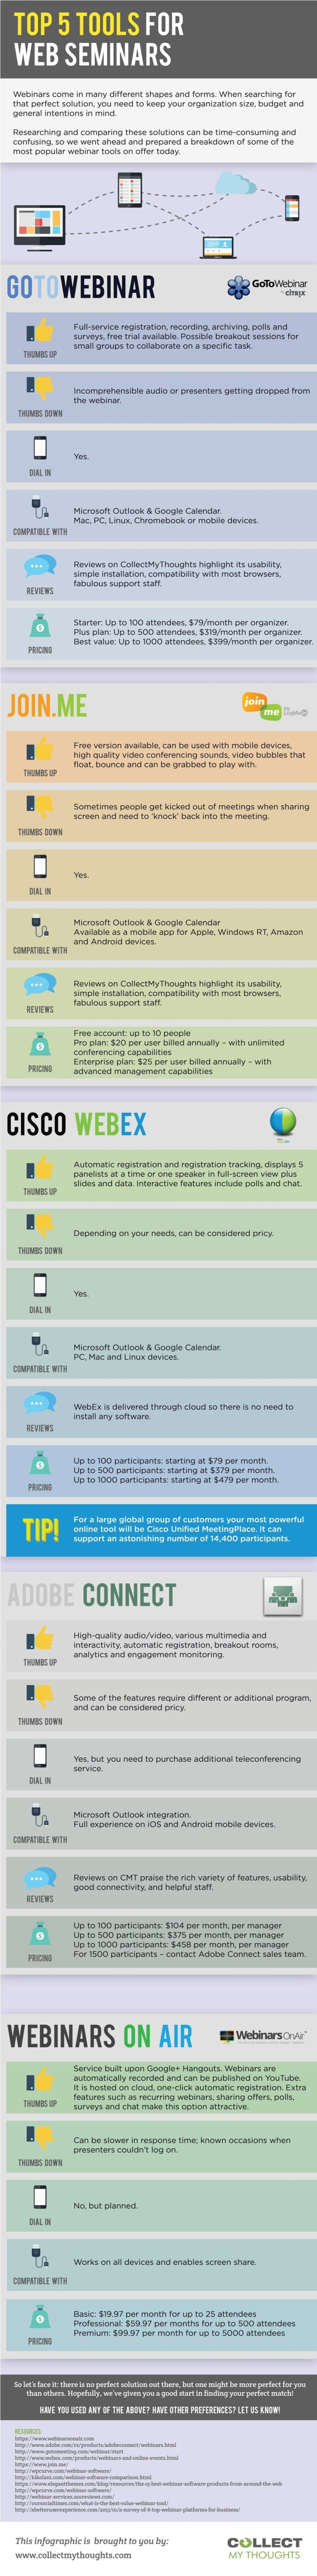 Top 5 Tools for Webinars Infographic